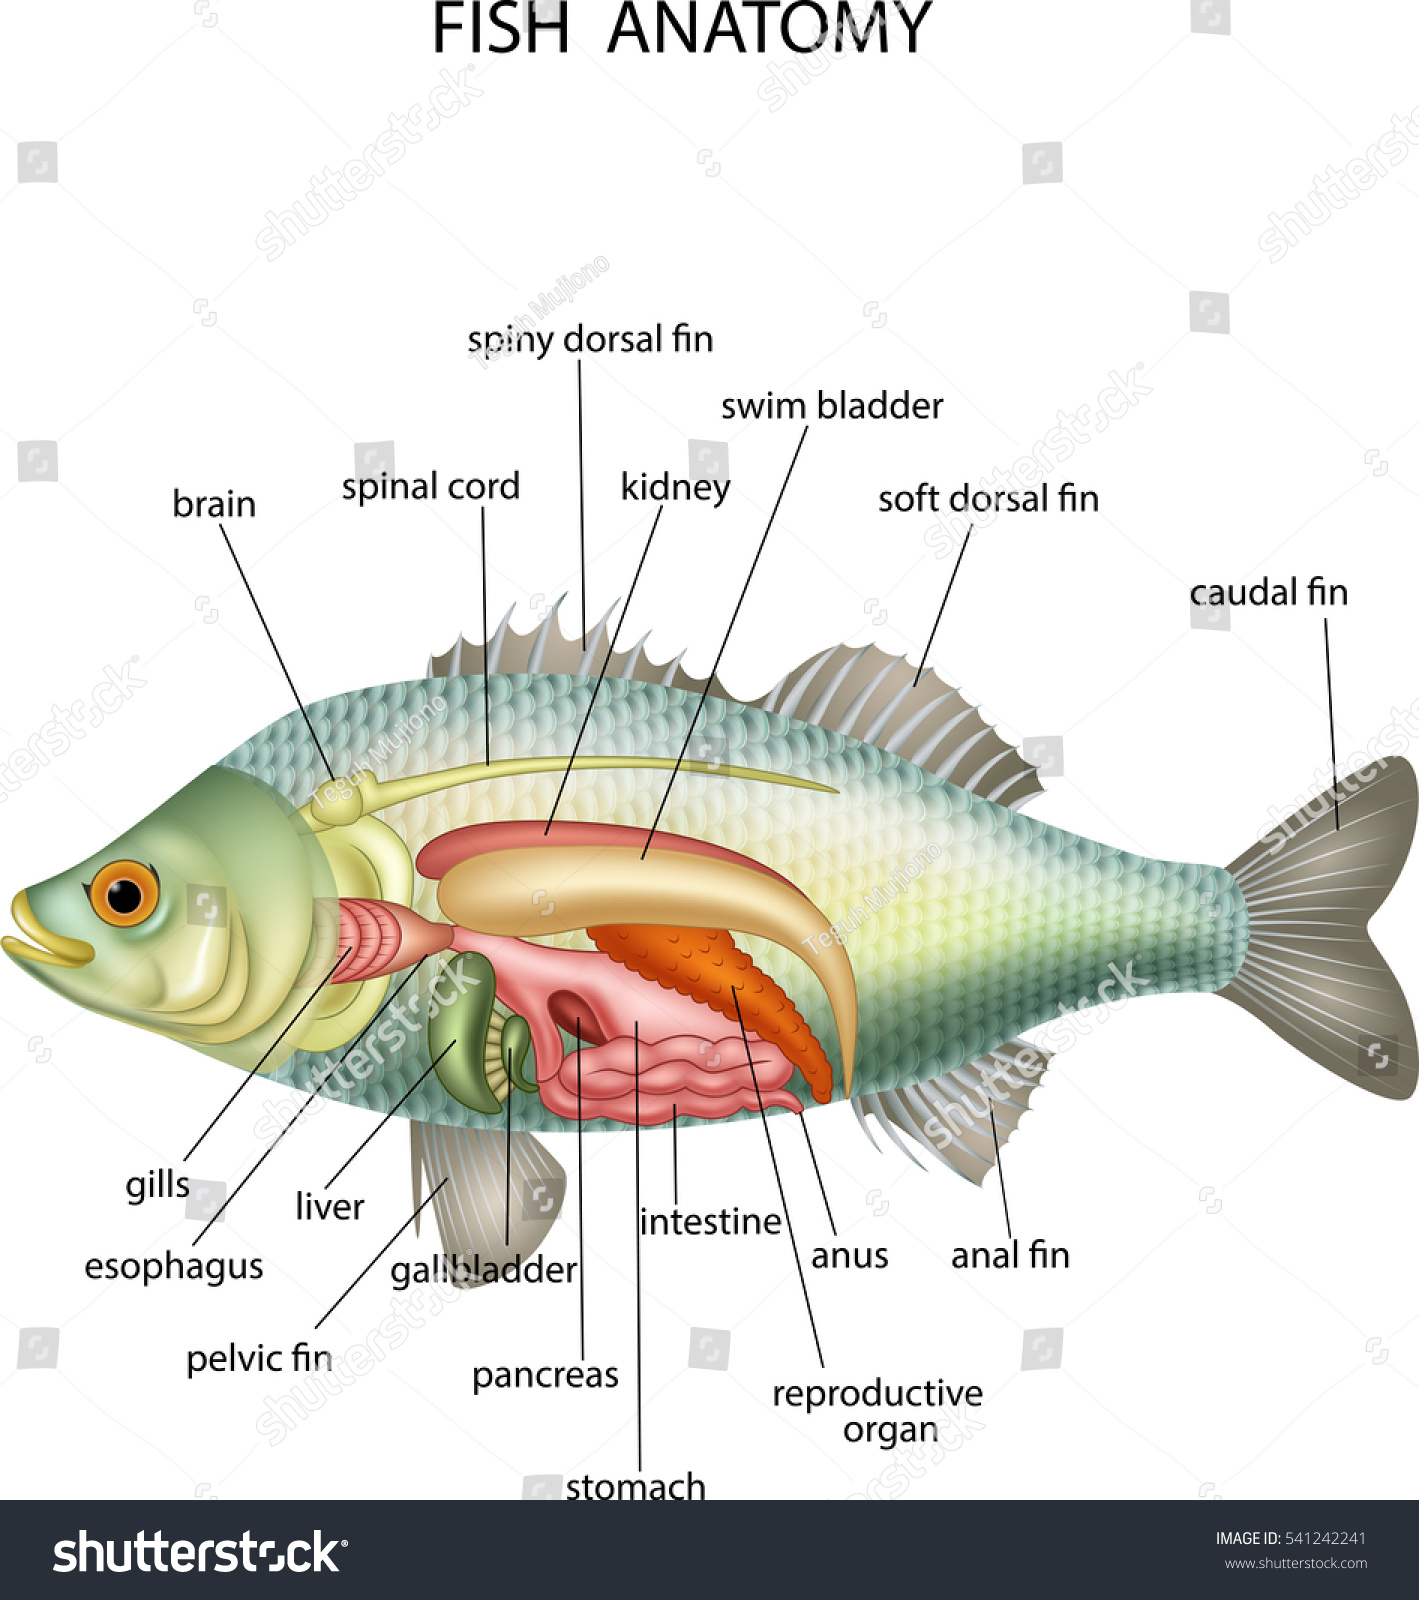 Royalty-free Anatomy of fish #541242241 Stock Photo | Avopix.com